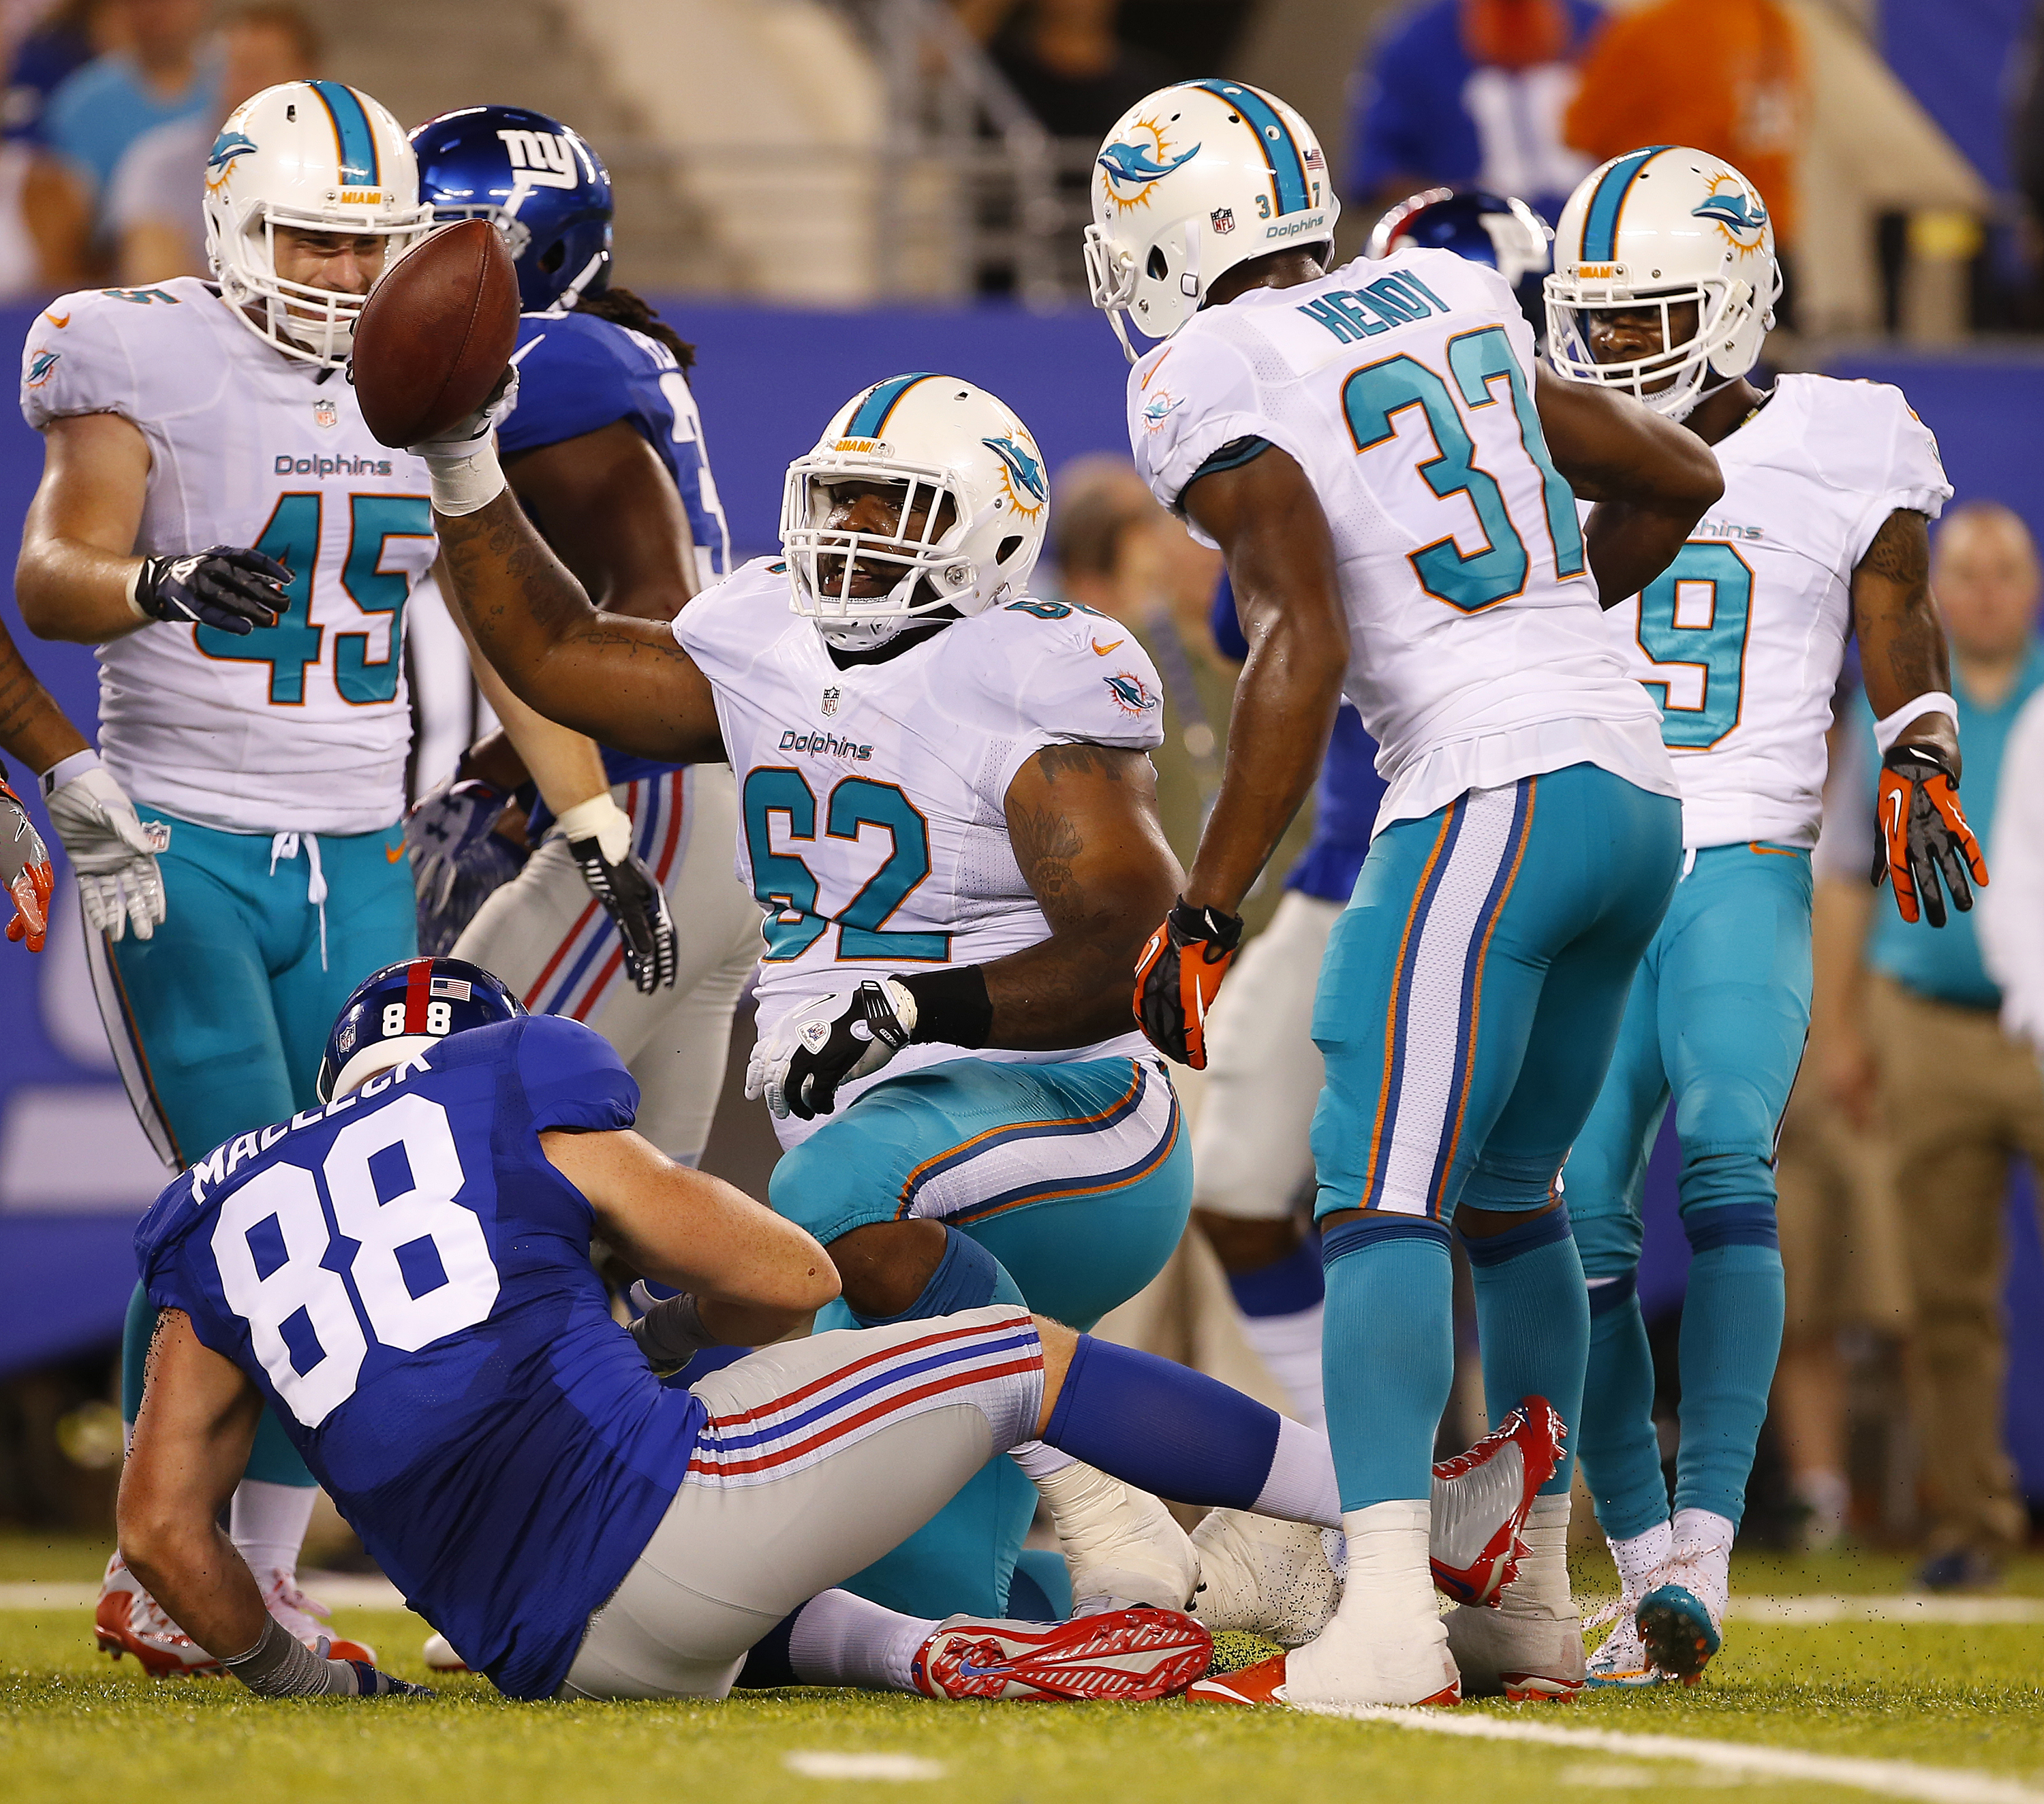 Deandre Coleman played five games with the Miami Dolphins the past two seasons before coming to the Bills. (Getty Images)